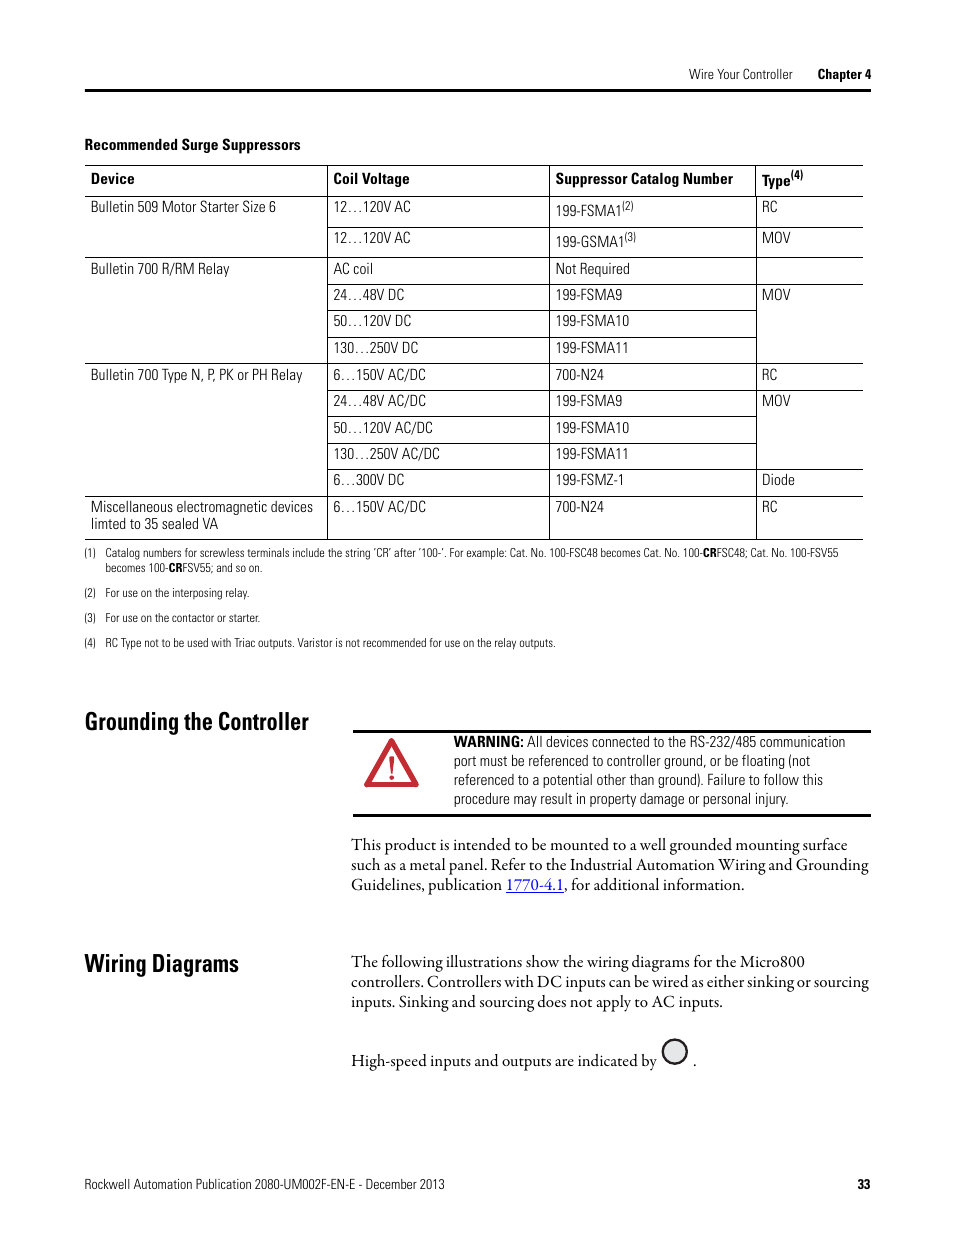 rockwell automation 2080 lc50 micro830 and micro850 programmable controllers user manual page47 grounding the controller, wiring diagrams, grounding the controller